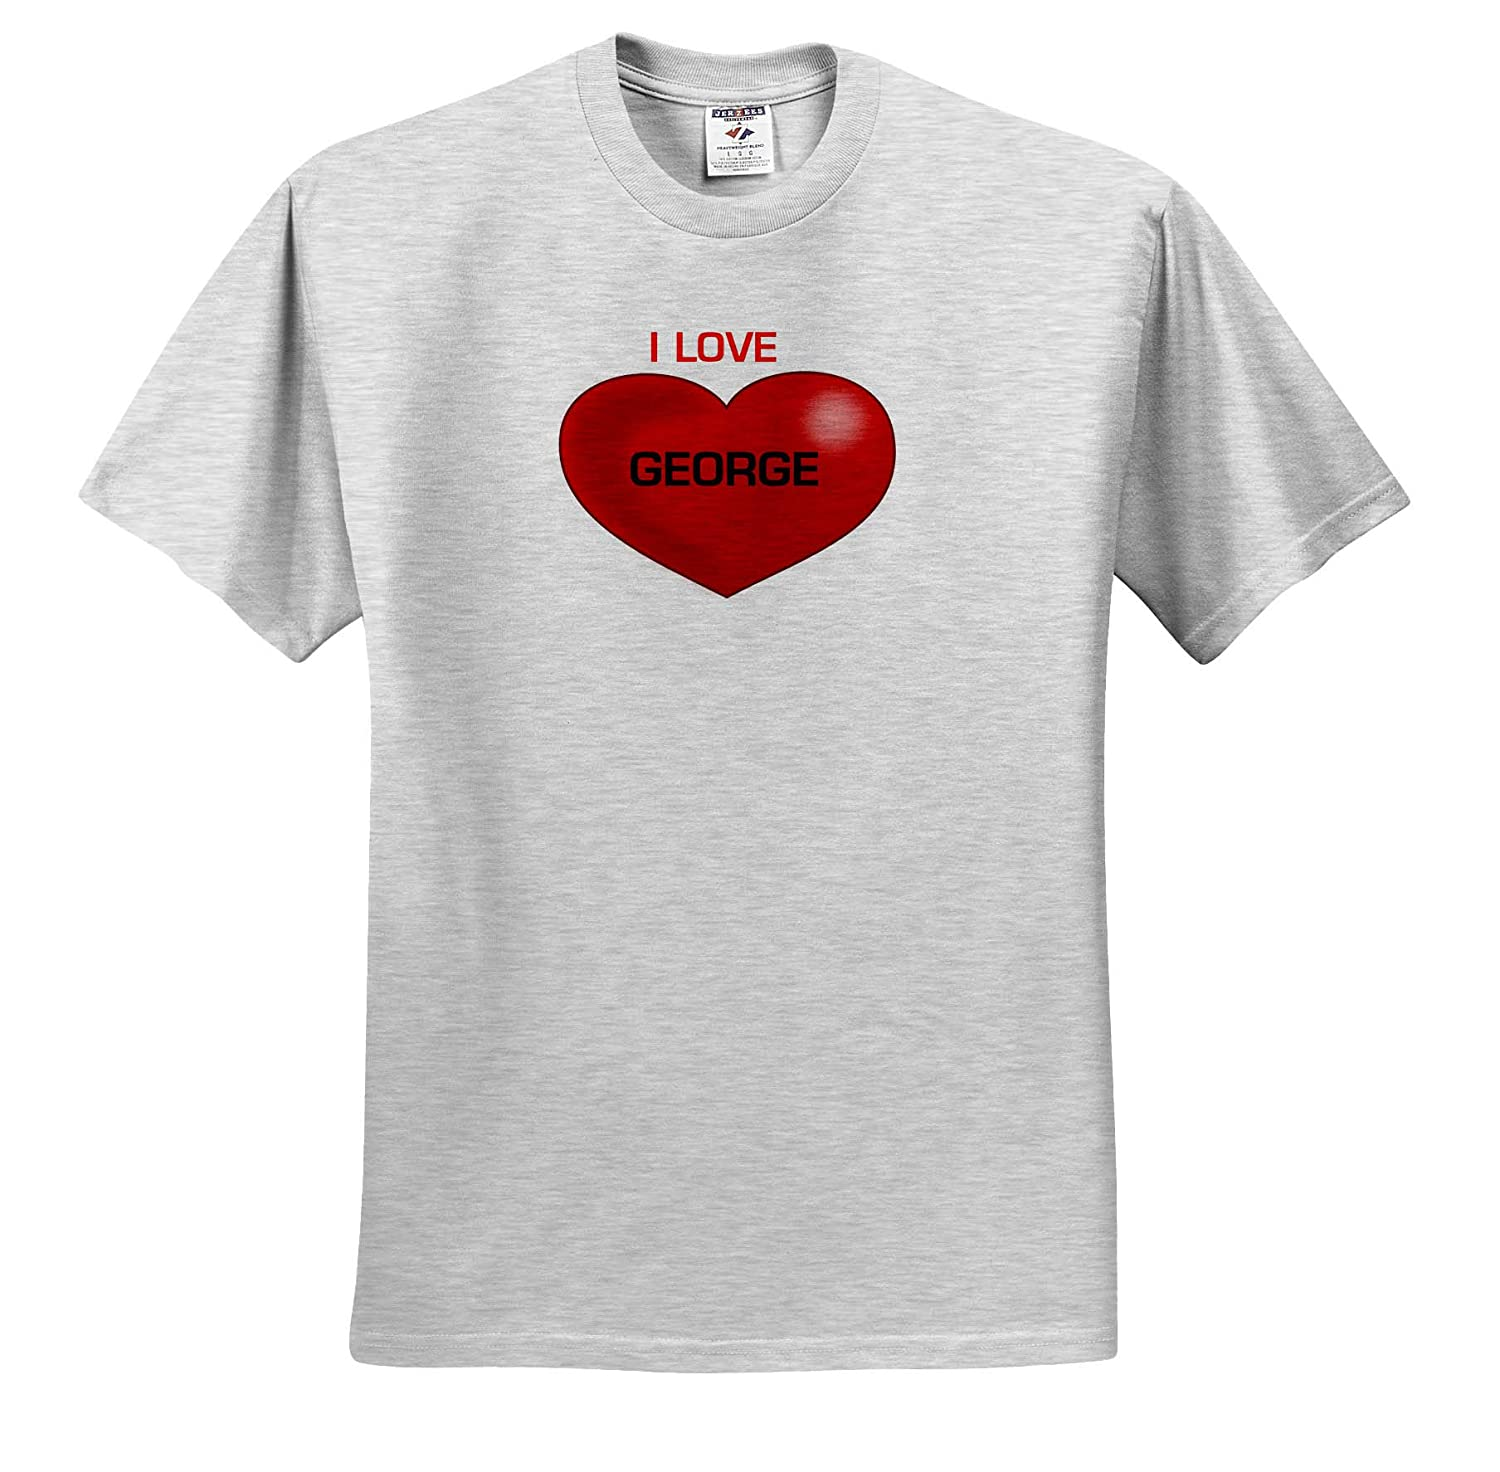 T-Shirts Love Hearts with Names Image of Big Red Heart with Love You George 3dRose Lens Art by Florene